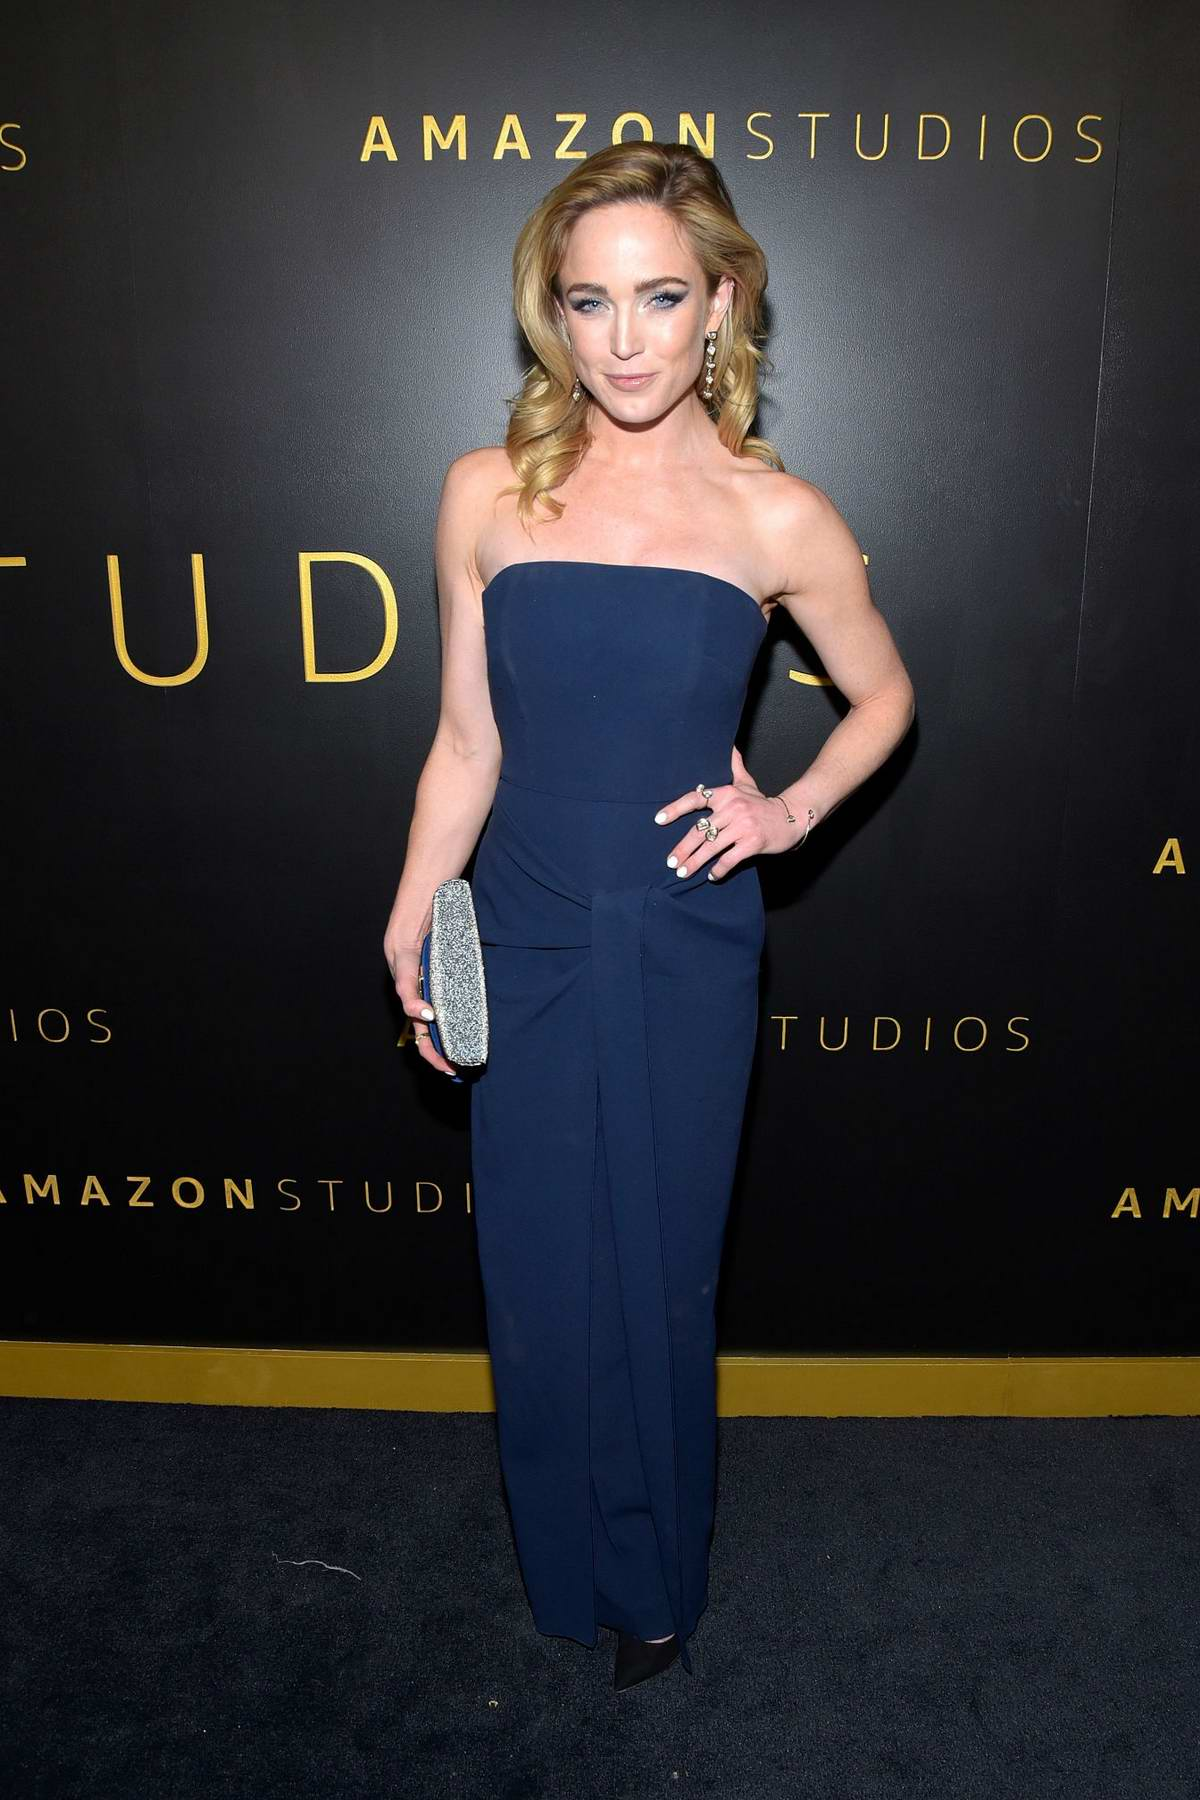 Caity Lotz attends Amazon Studios Golden Globes After-Party at The Beverly Hilton Hotel in Beverly Hills, California